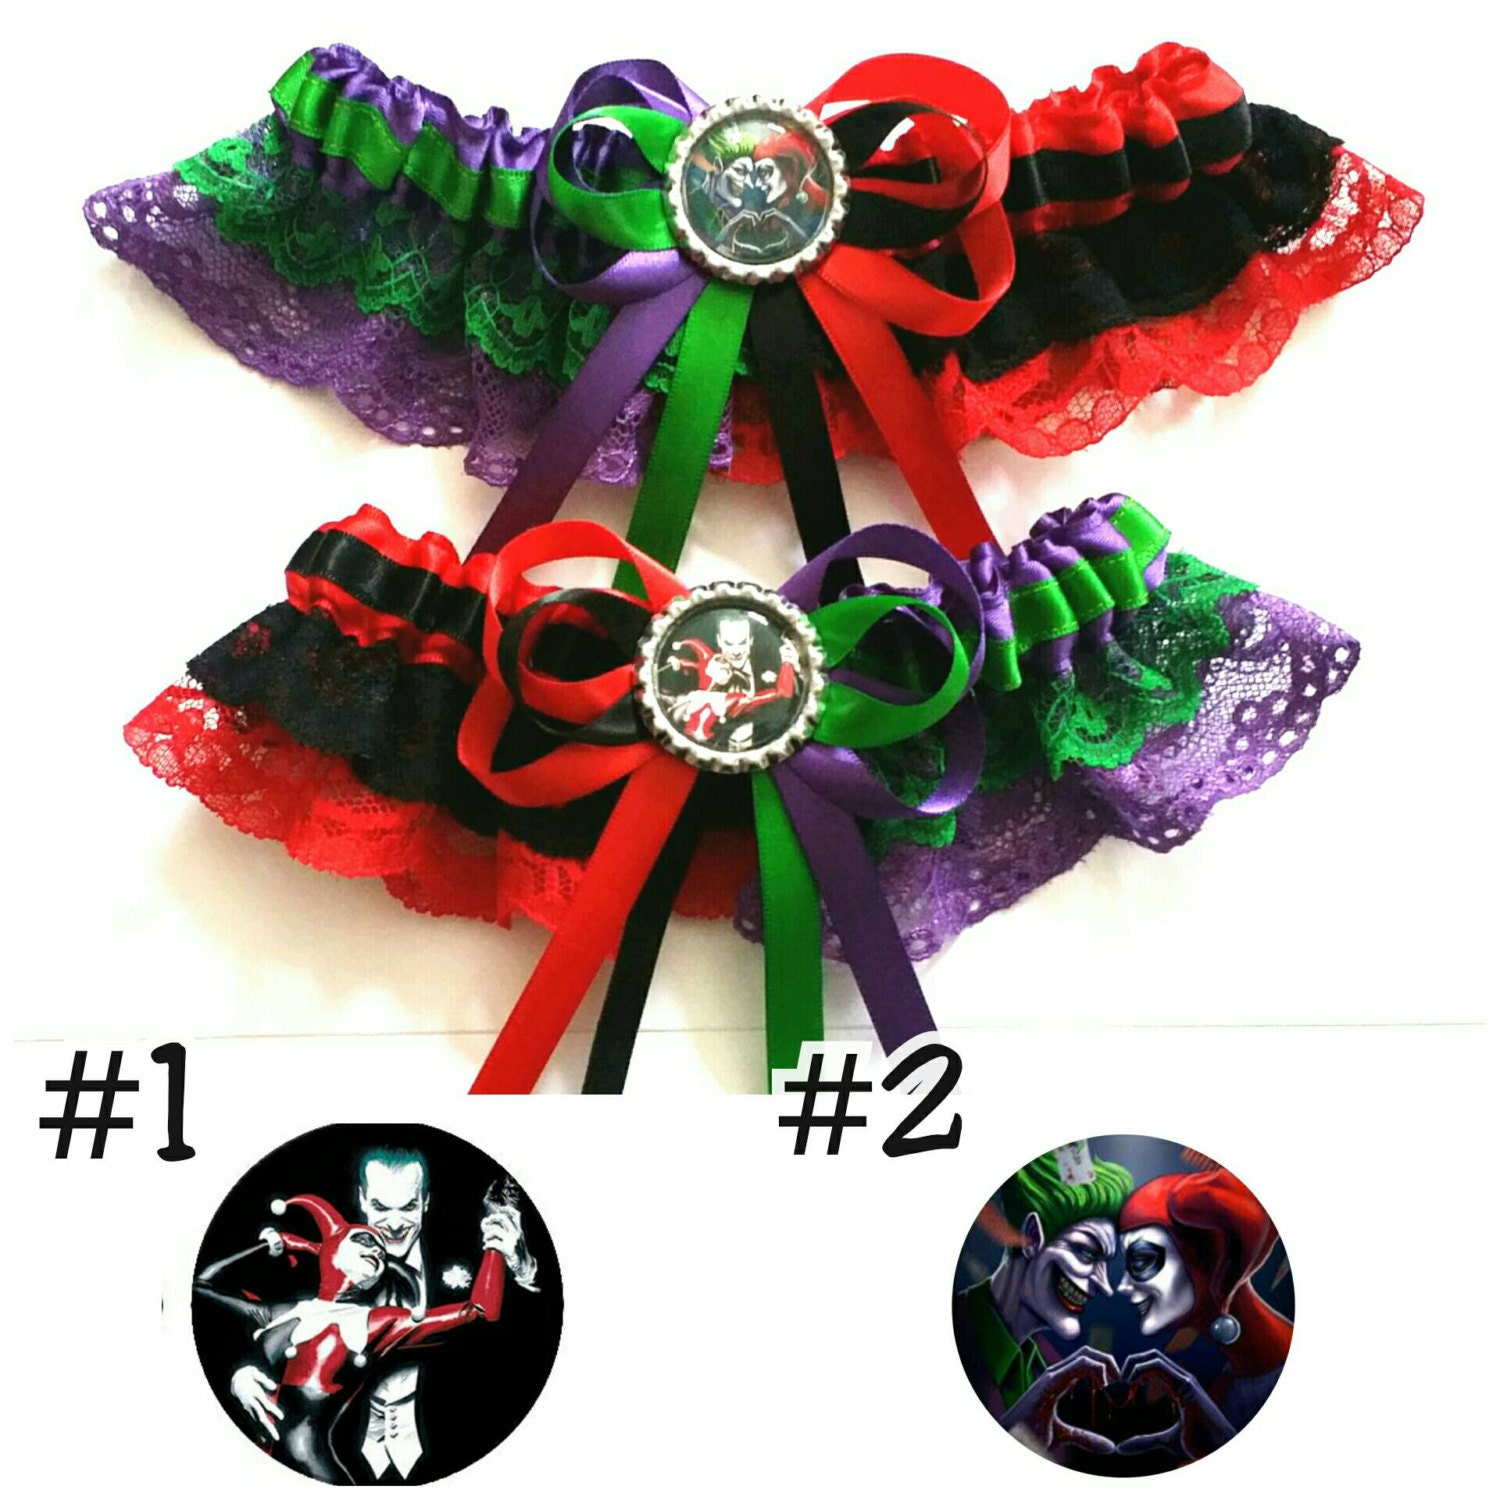 harley quinn wedding harley quinn wedding ring Harley Quinn and The Joker half n half Satin Satin and Lace Garter Garter Set Your choice of embellishment